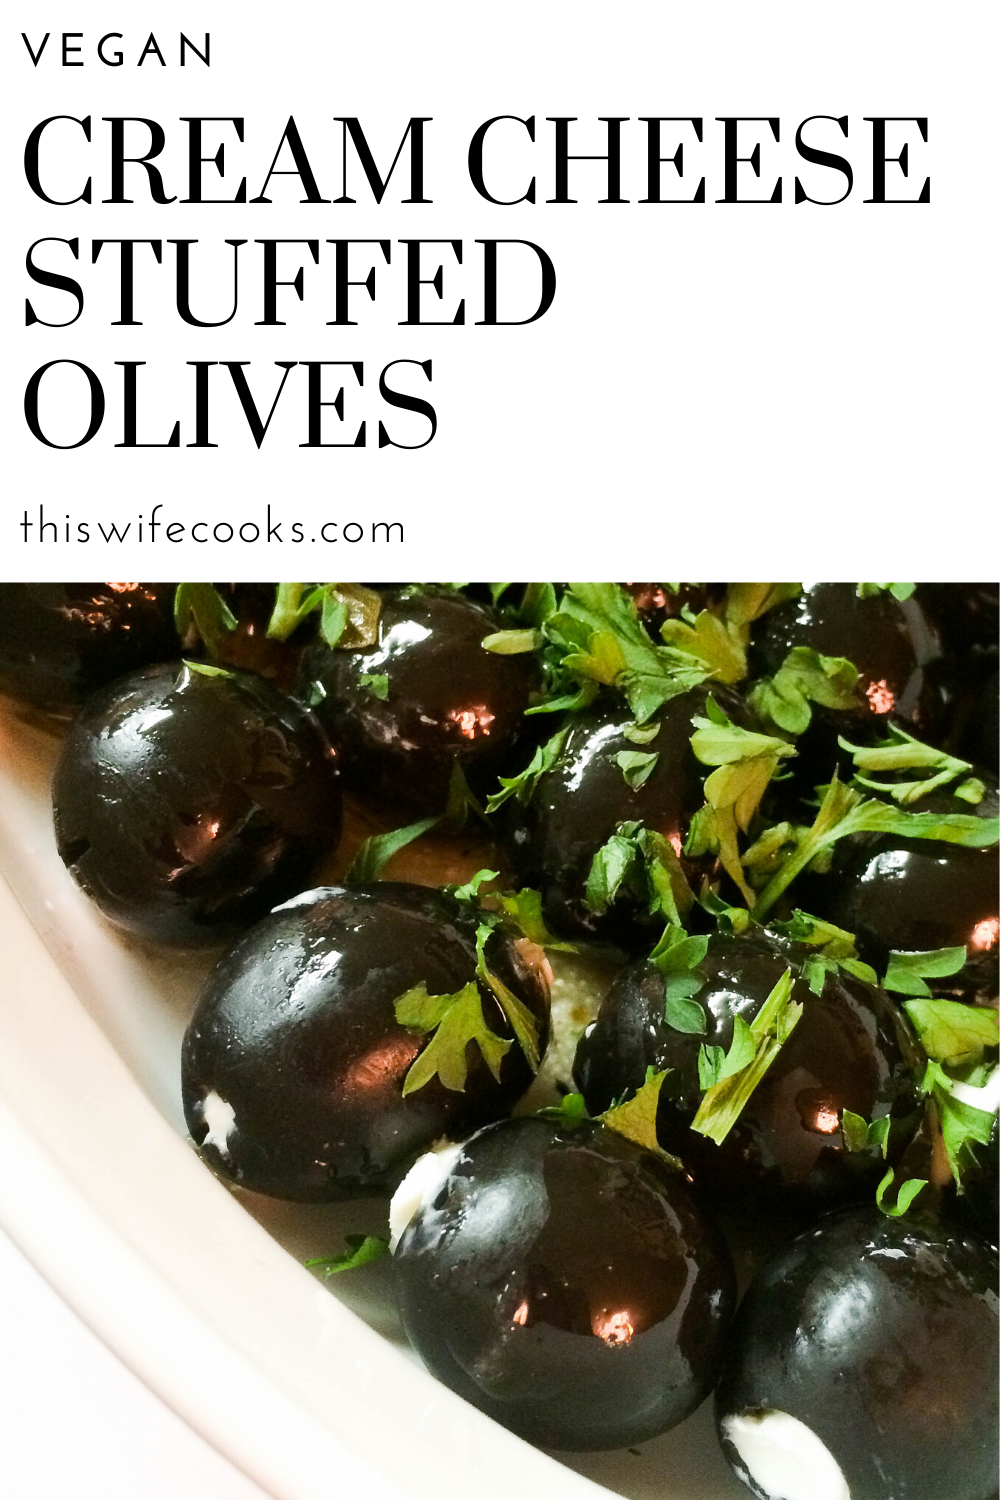 Vegan Cream Cheese Stuffed Olives - A super easy and tasty appetizer you can throw together in ten minutes! The secret ingredient is Italian dressing! via @thiswifecooks